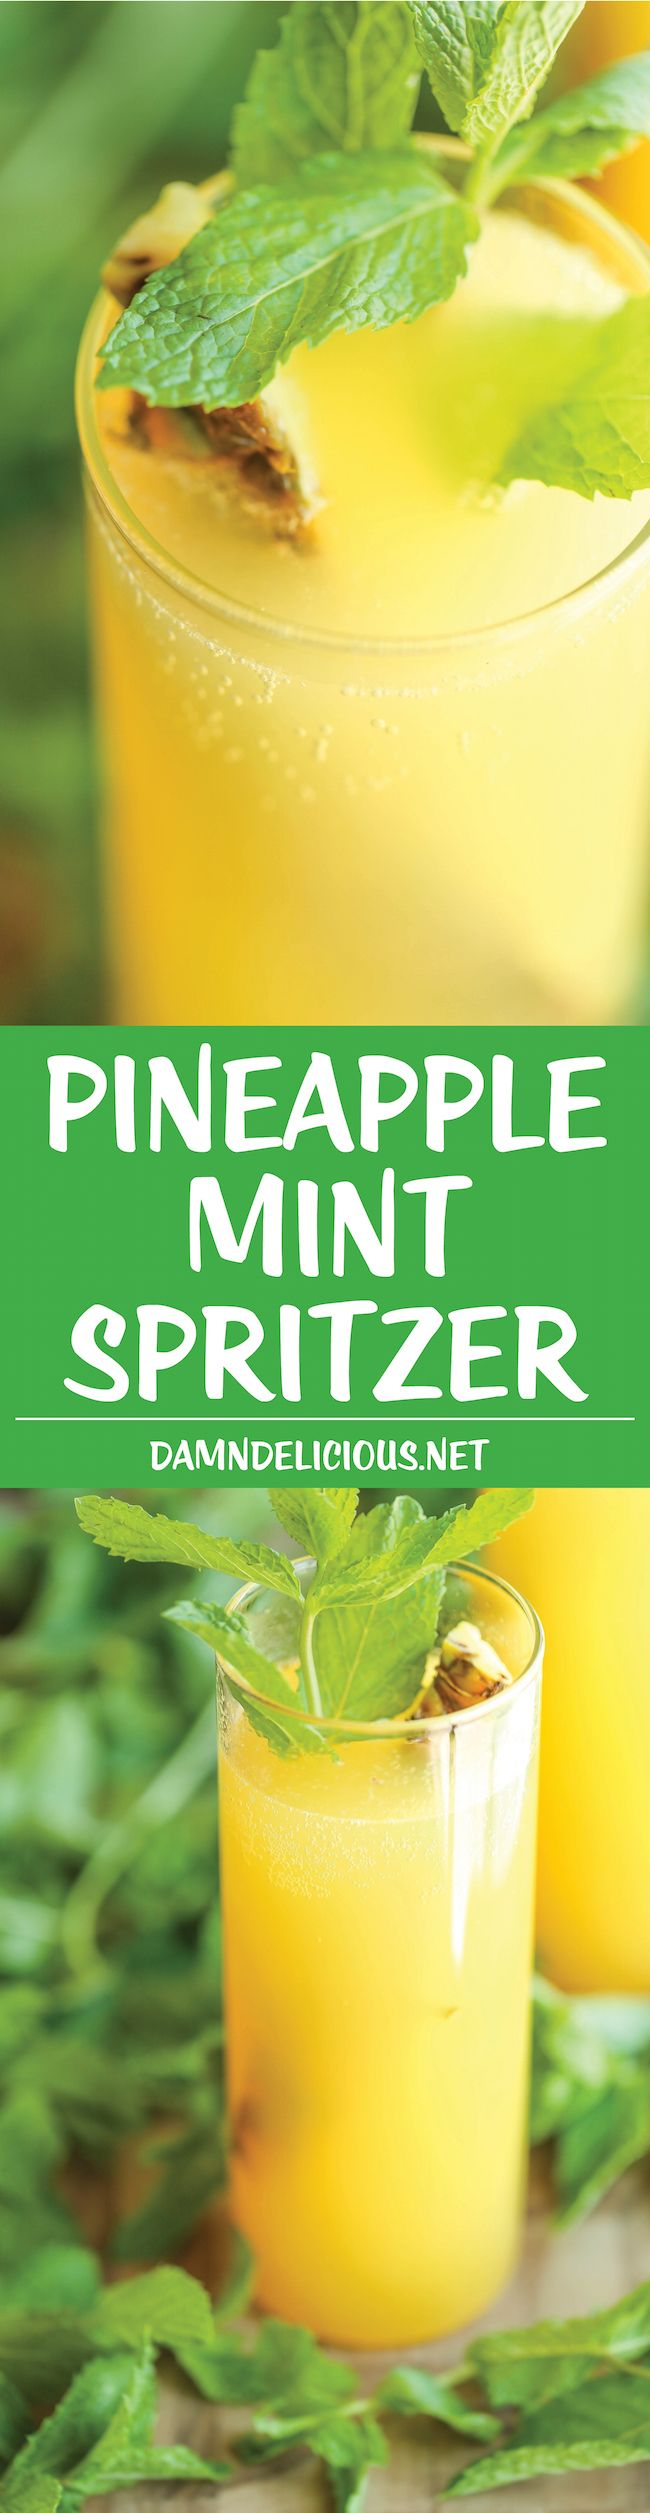 Pineapple Mint Spritzer - Simple, refreshing and wonderfully bubbly ...